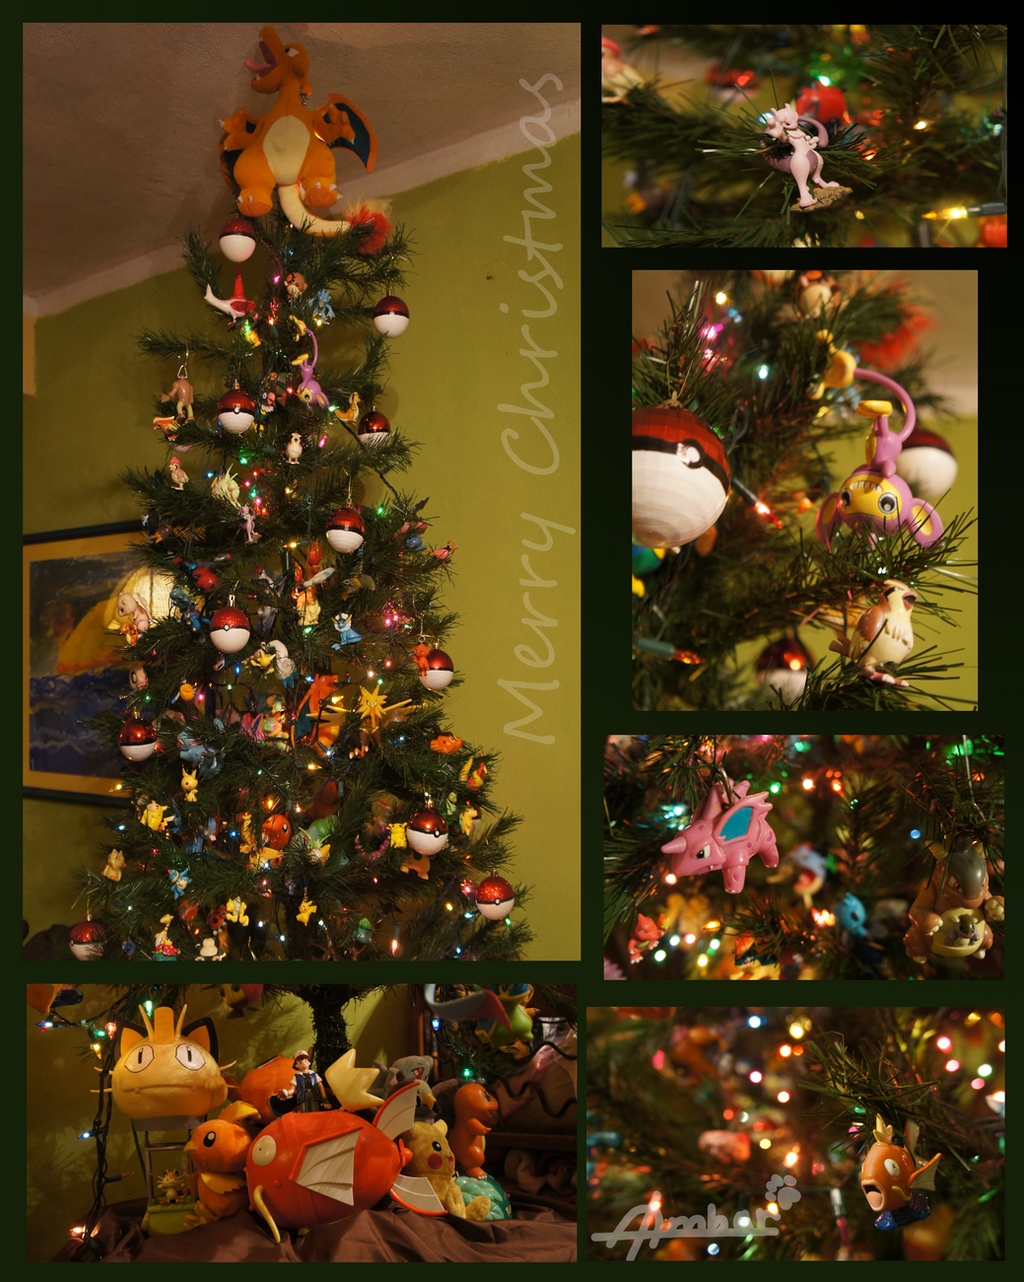 Pokemon christmas tree by dragonperro96 on DeviantArt